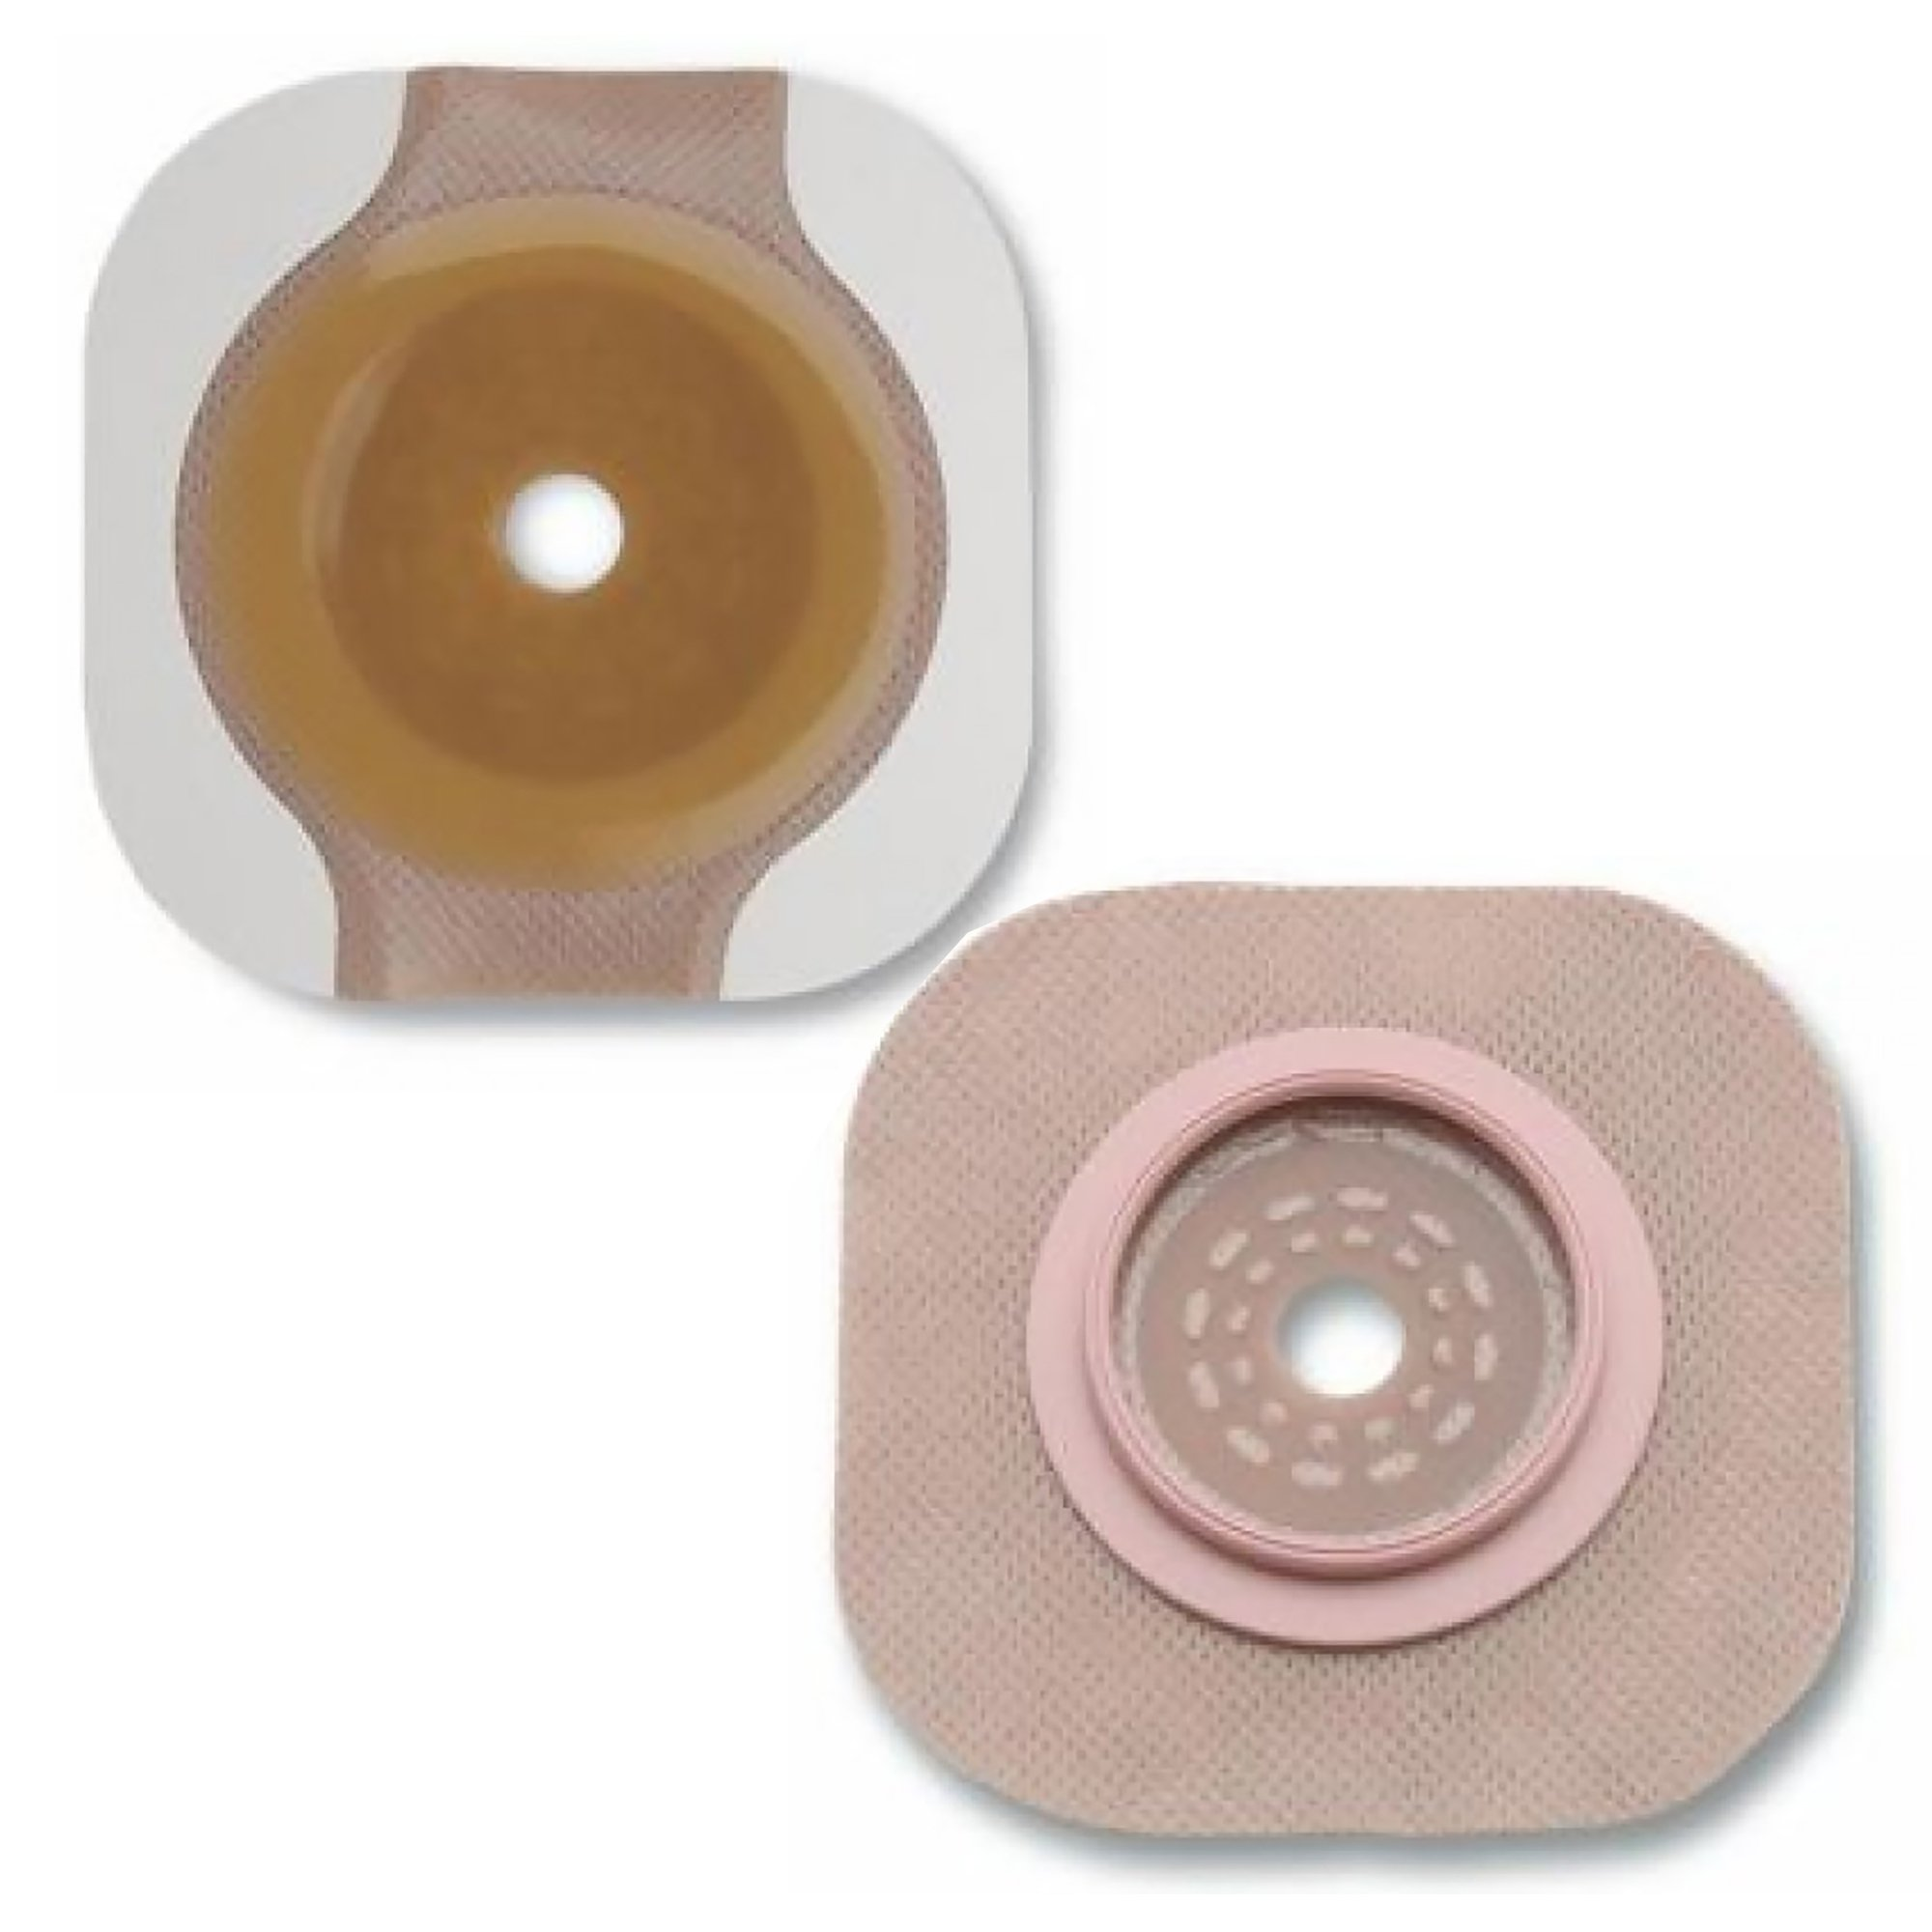 New Image Flextend Ostomy Barrier, Trim to Fit, 44 mm Flange, 14602, 1 Each